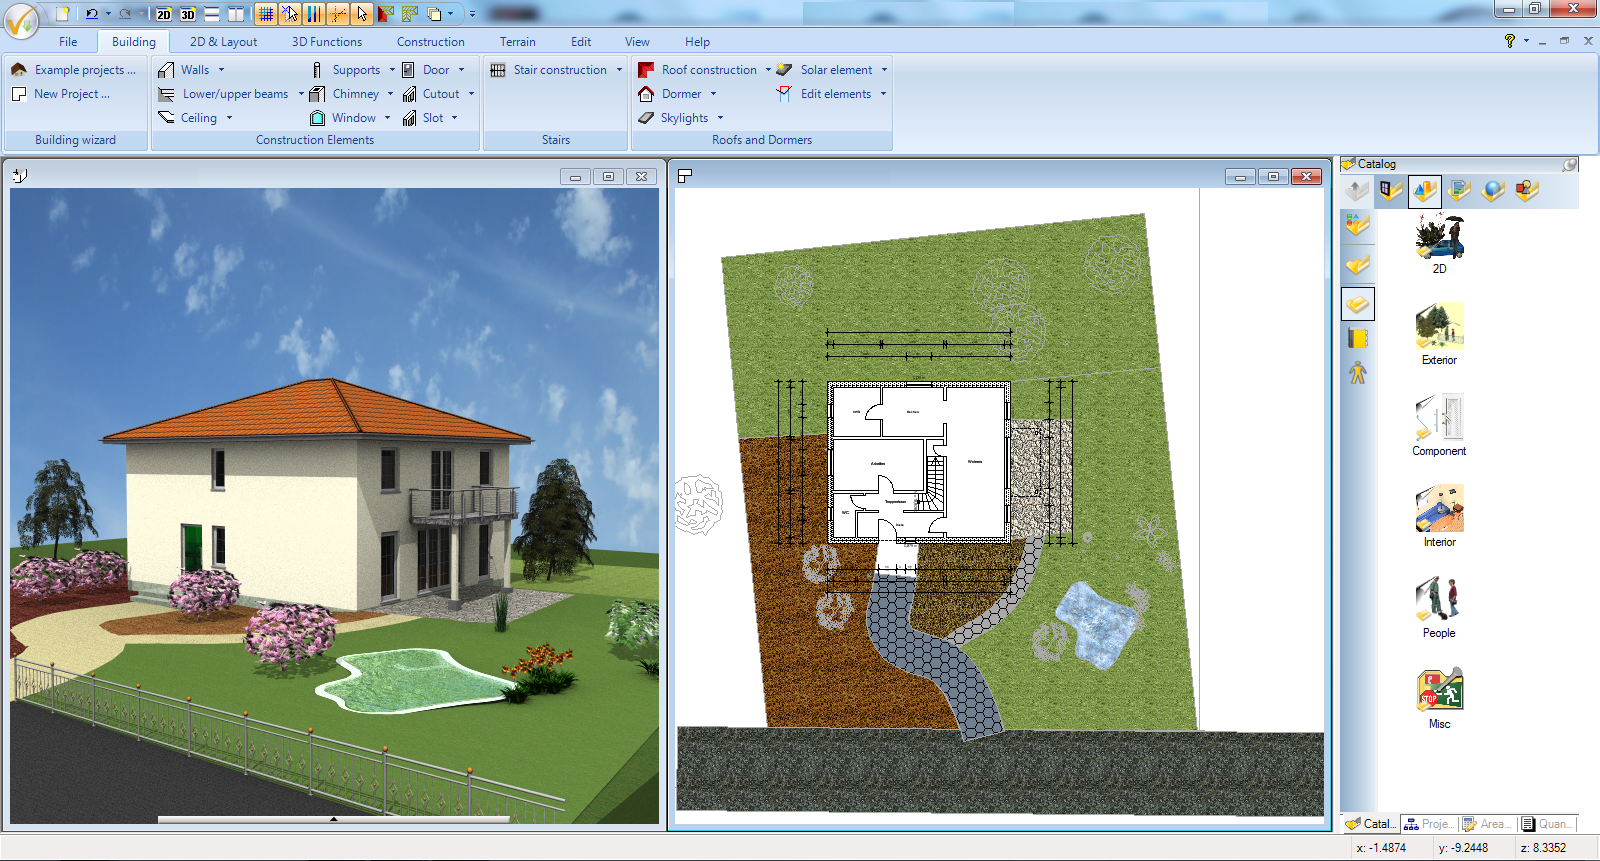 Ashampoo 3d Cad Architecture 5 0 0 Free Download: architecture software online free